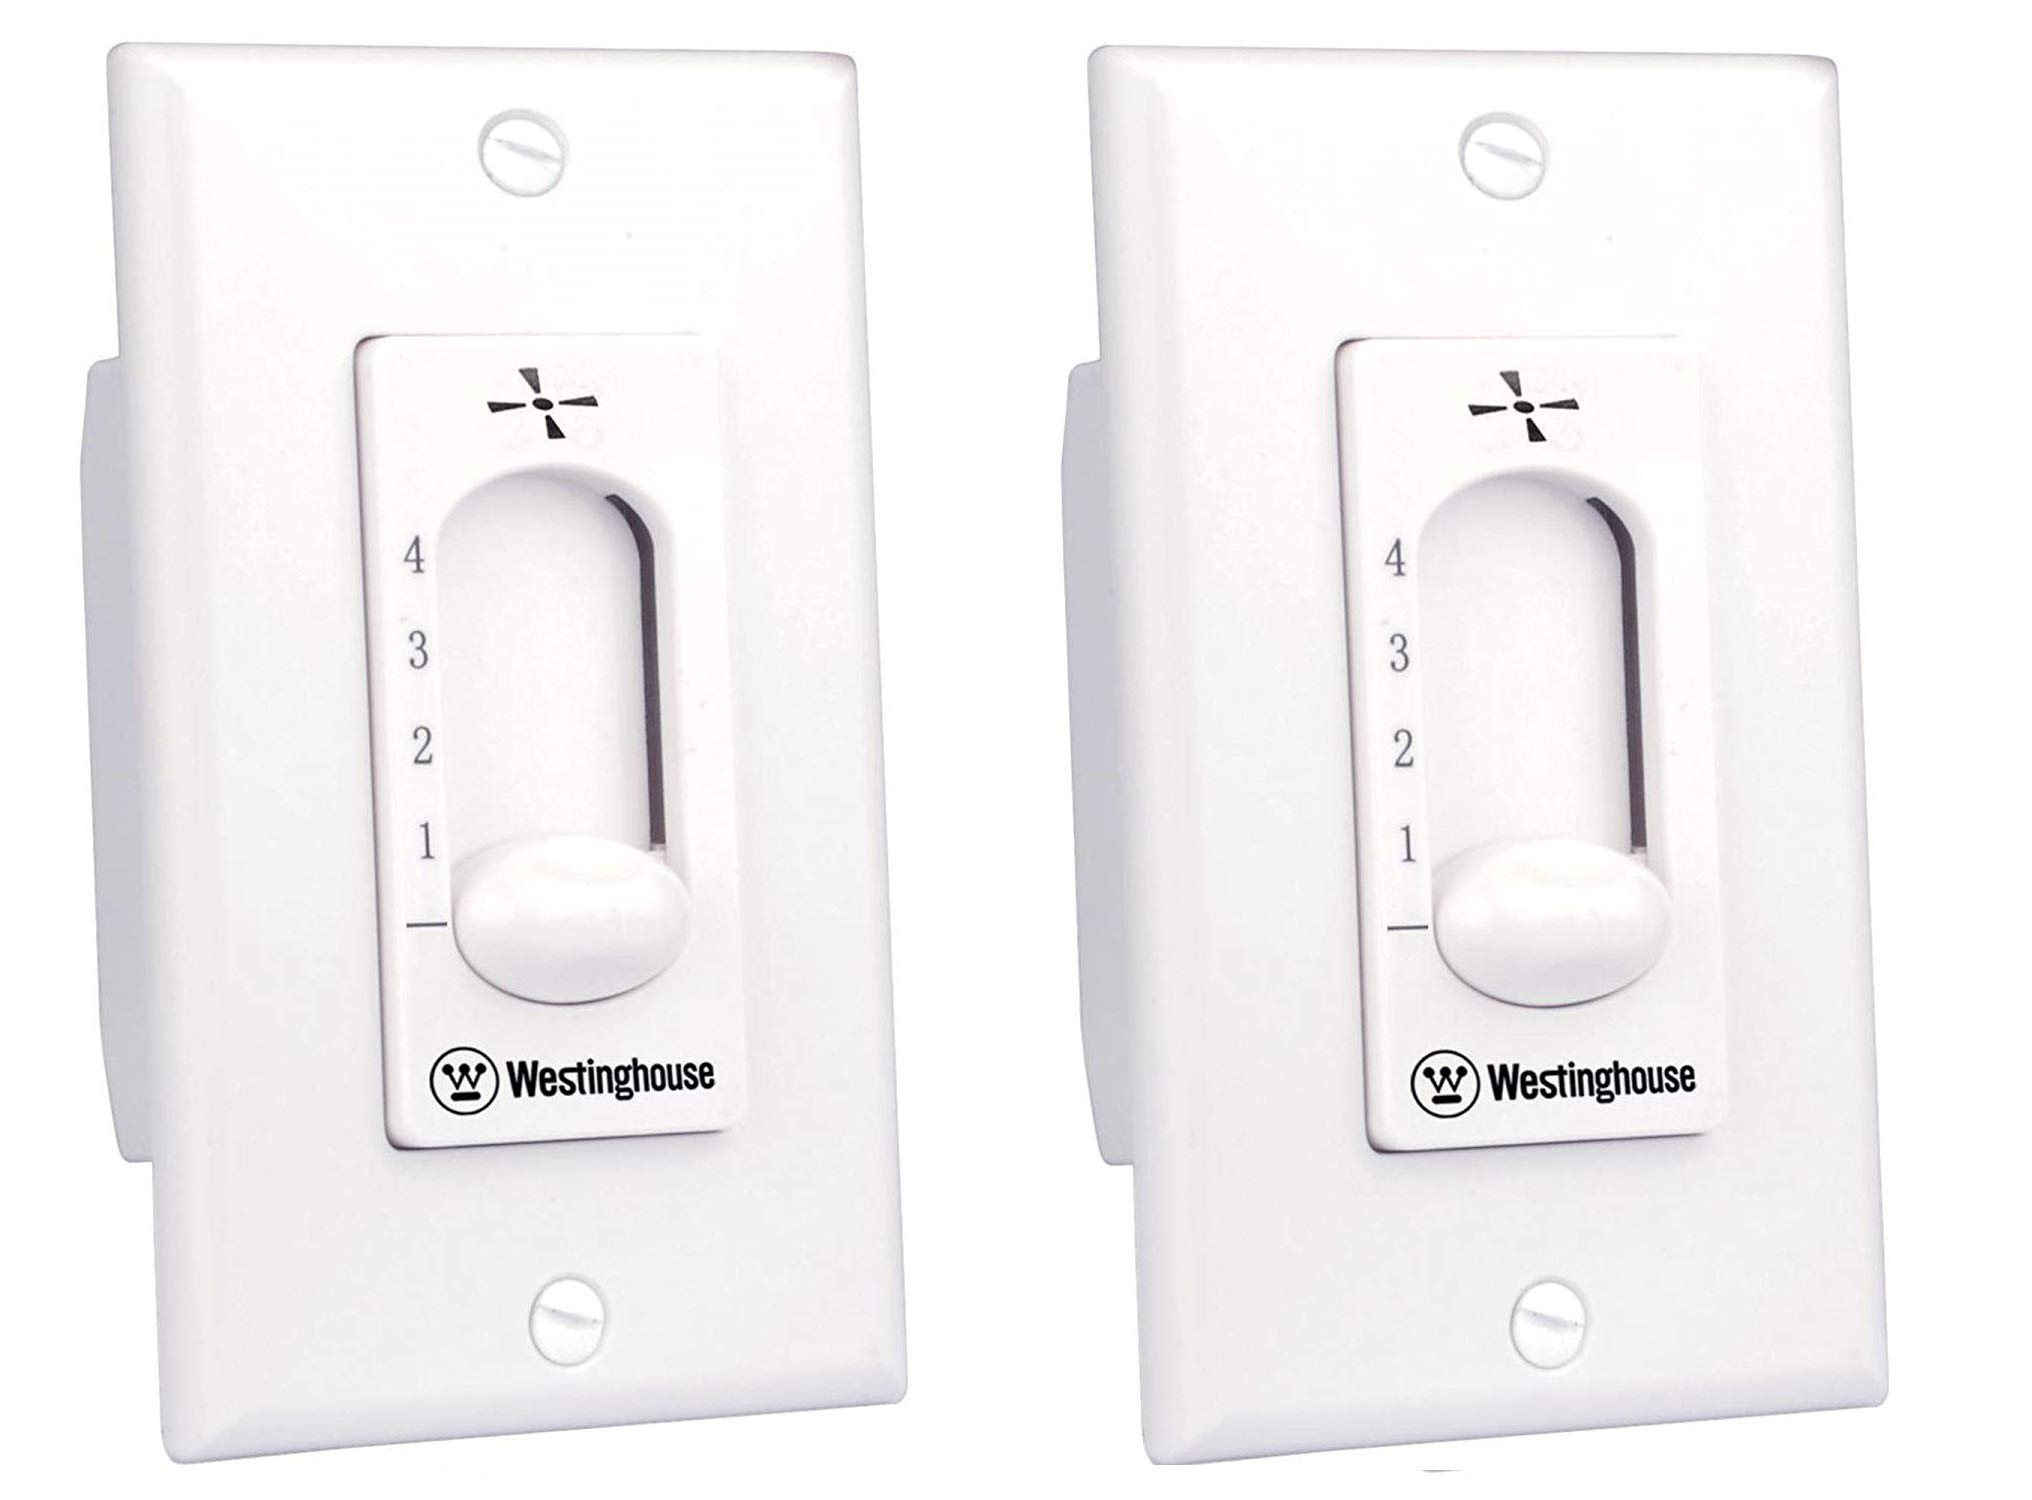 Westinghouse 7787200 Ceiling Fan Wall Control - 2 Pack